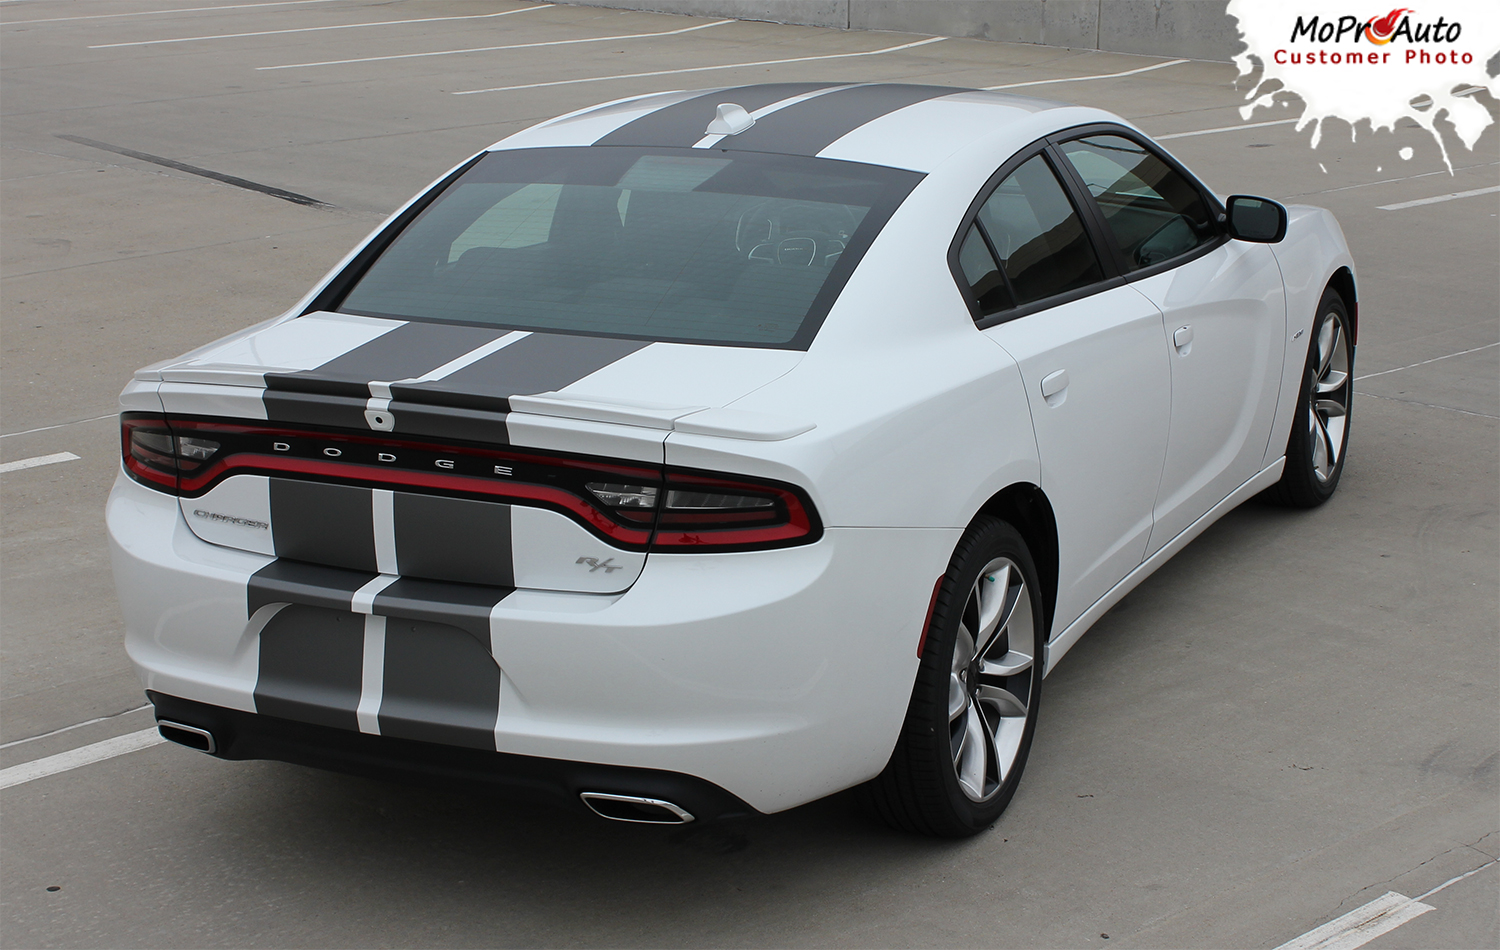 2015 2016 2017 2018 Rally Racing Stripes Dodge Charger Vinyl Graphics, Striping and Decals Set